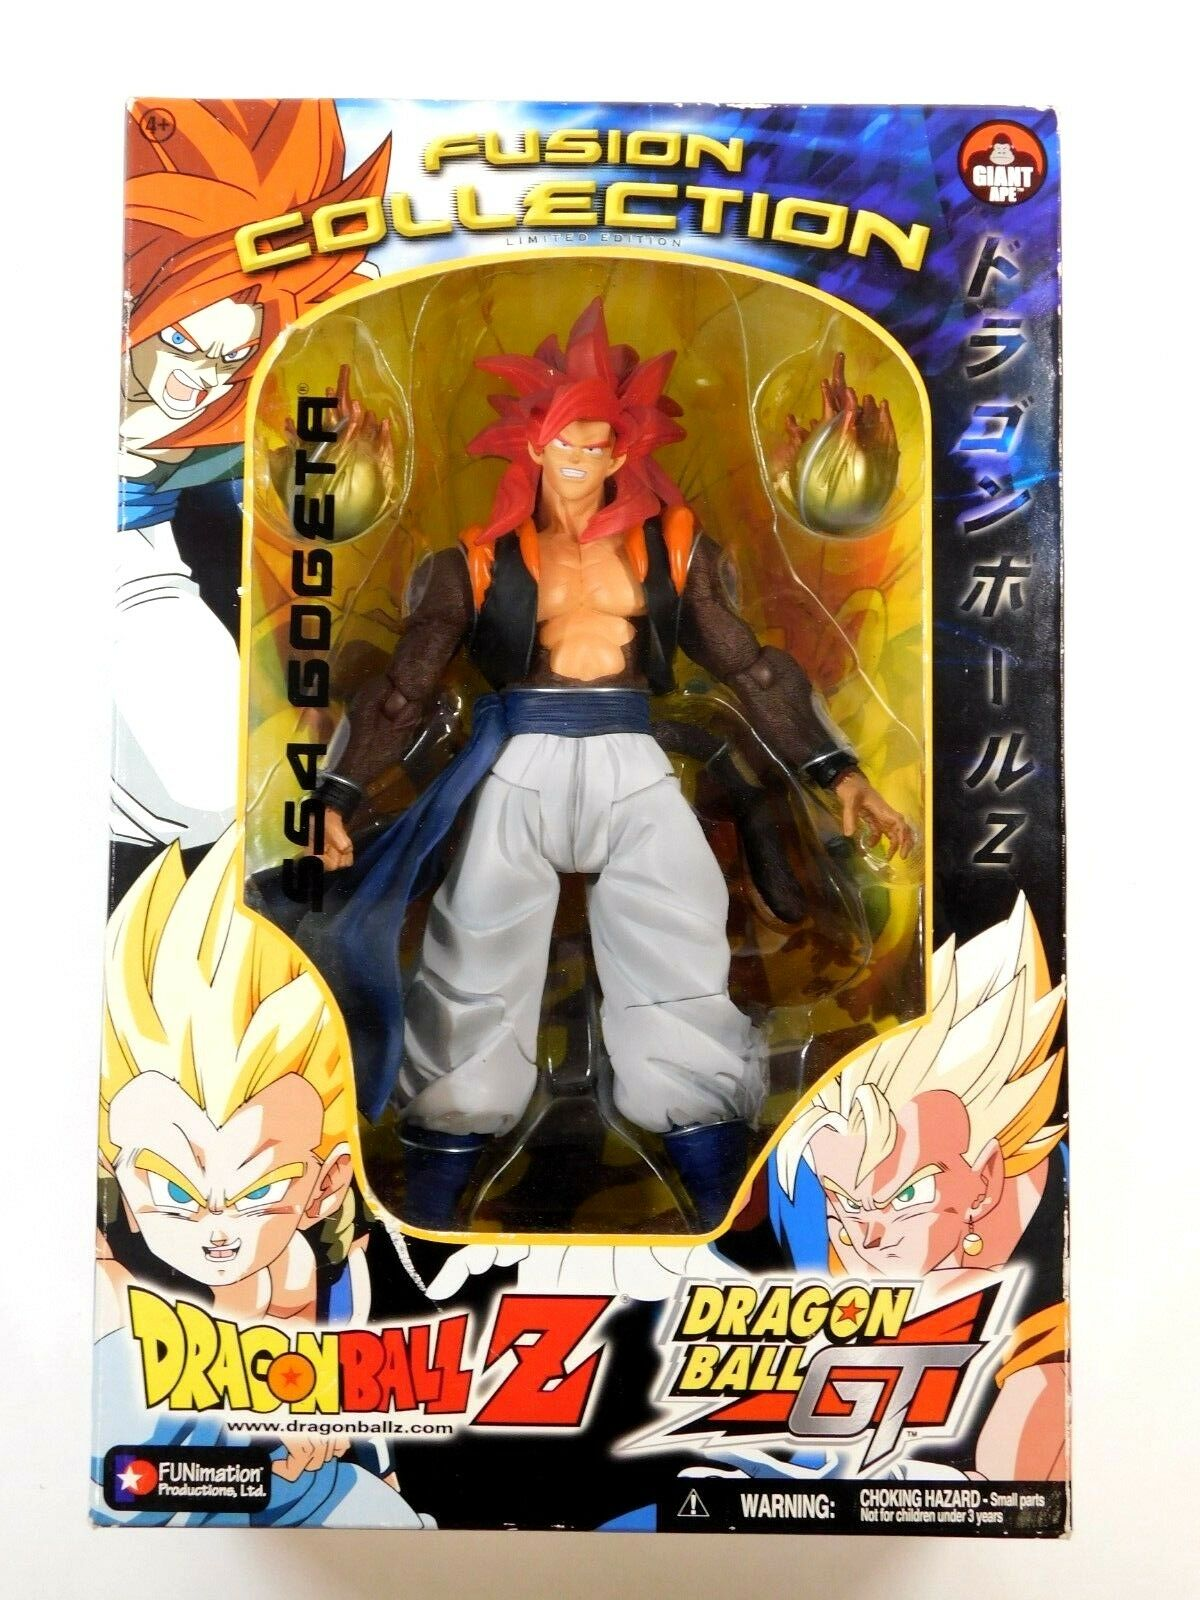 Dragon ball Z FUSION collection édition limitée SS4 Gogeta 12 in (environ 30.48 cm) Figure Comme neuf IN BOX